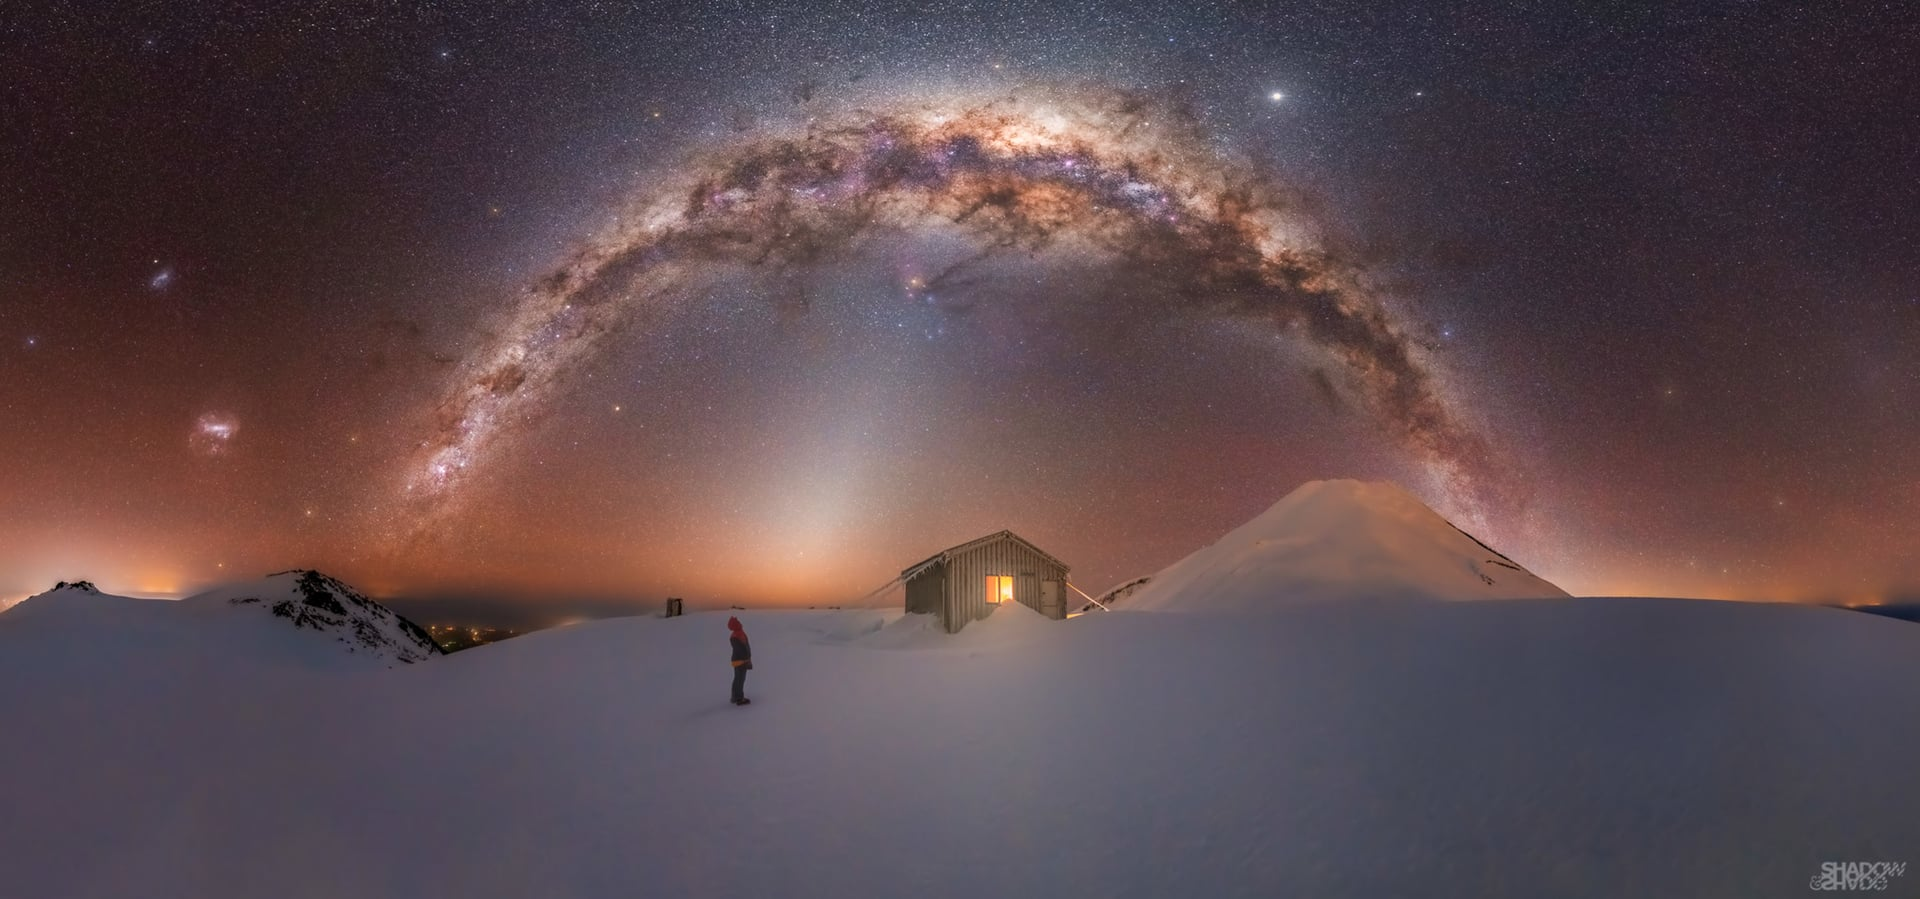 New Zealand Milky Way photographer of the Year